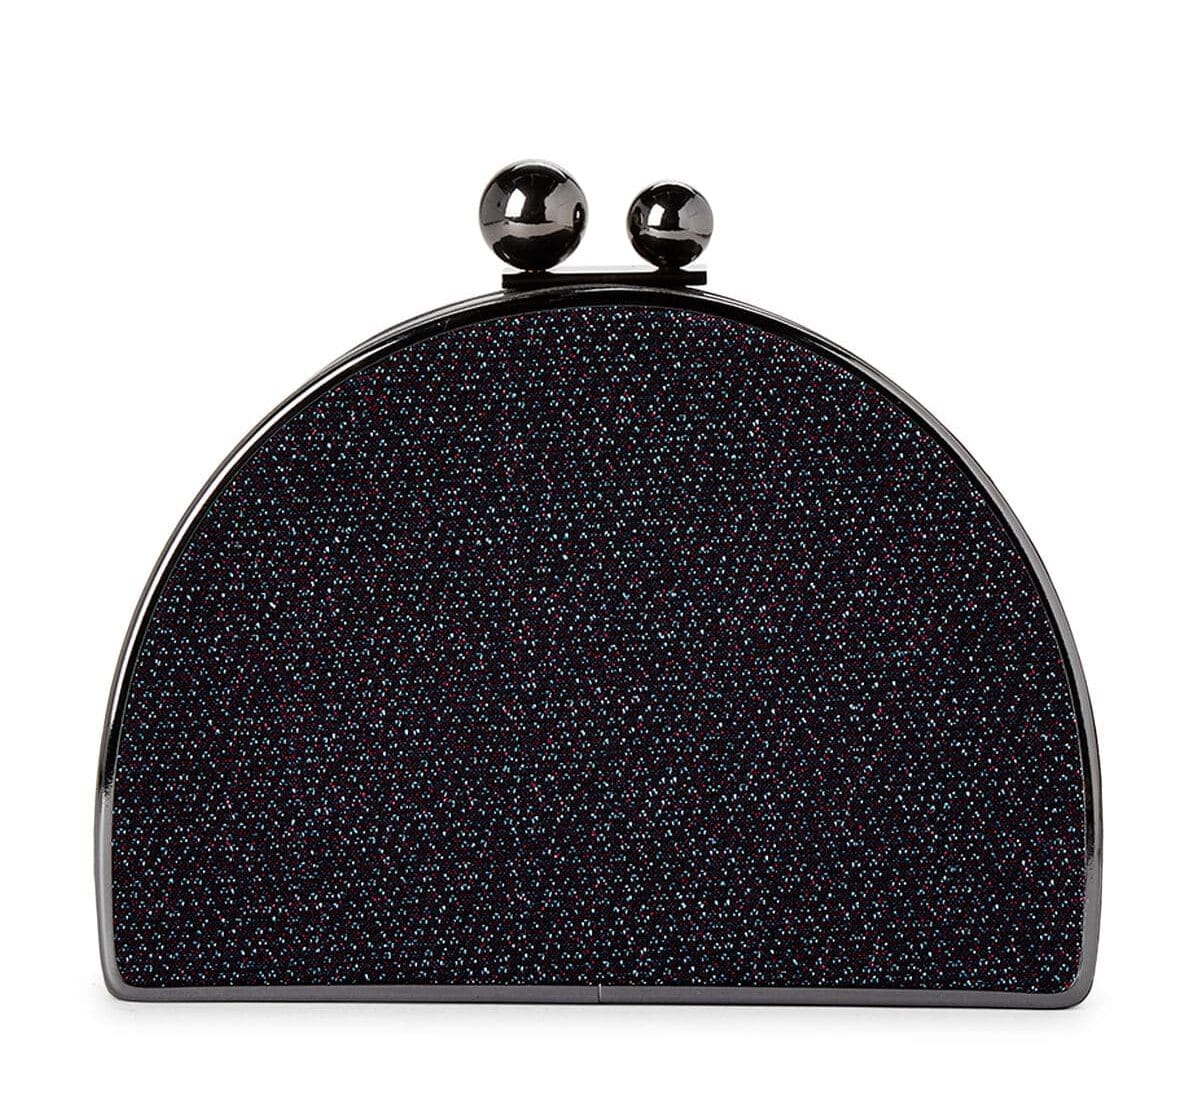 Tracee Glittered Blue Half-Moon Clutch For Fall Winter Spring Summer